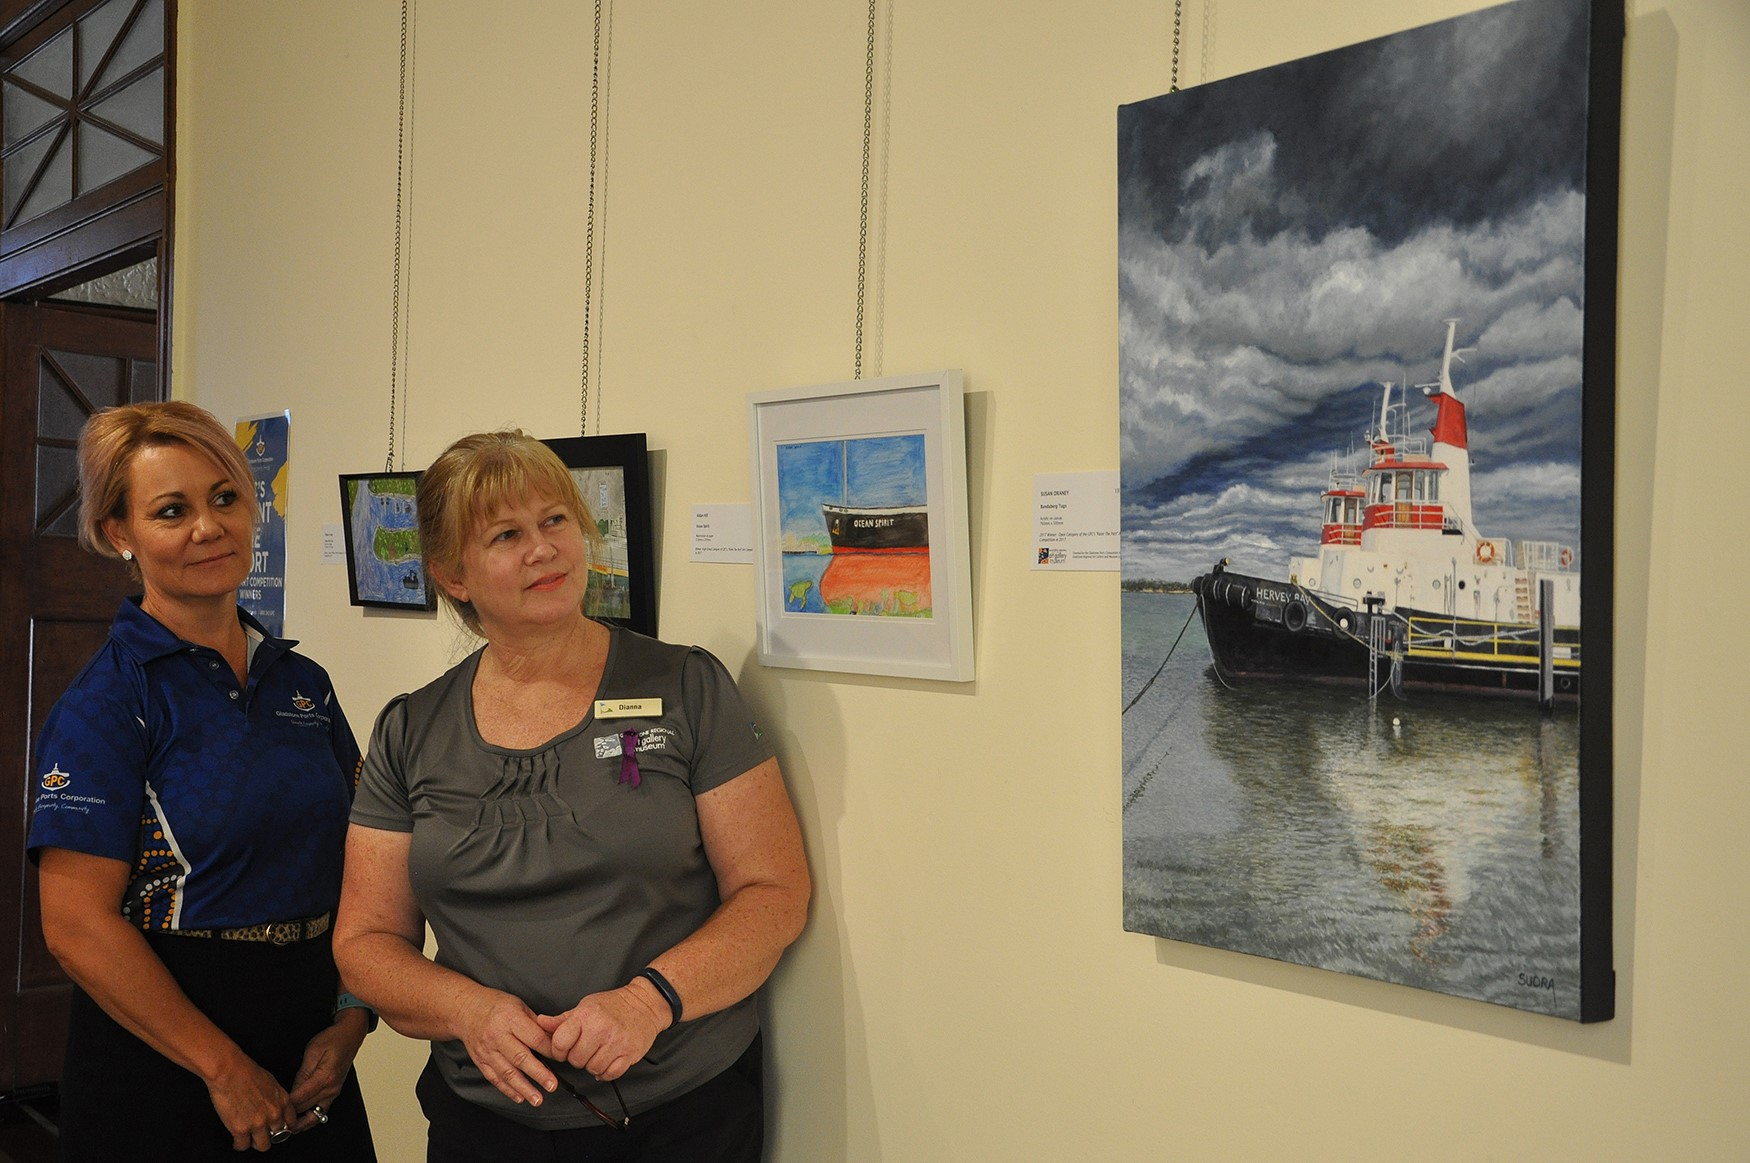 Gallery & Museum adds GPC winning art work to local art collection